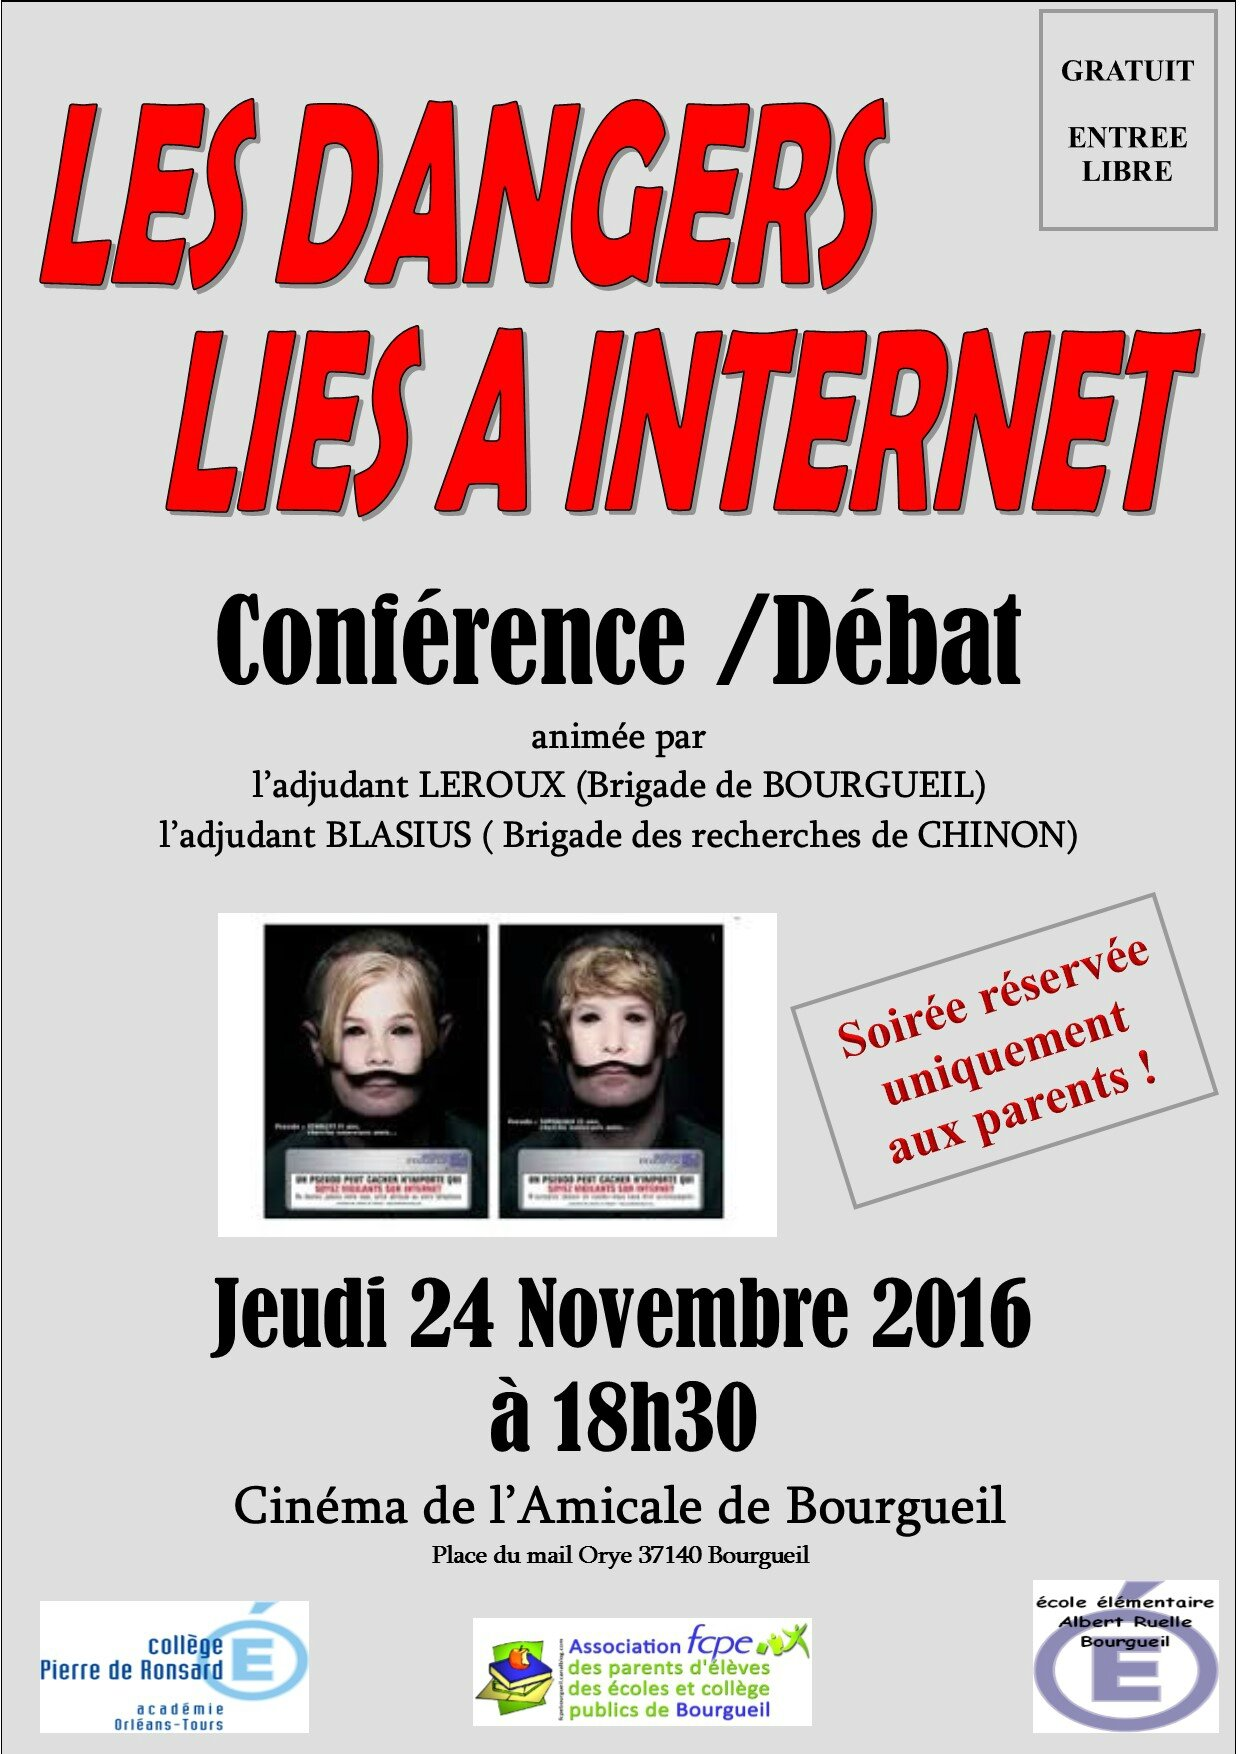 les dangers li s internet conf rence d bat jeudi 24 novembre 2016 18h30 association. Black Bedroom Furniture Sets. Home Design Ideas